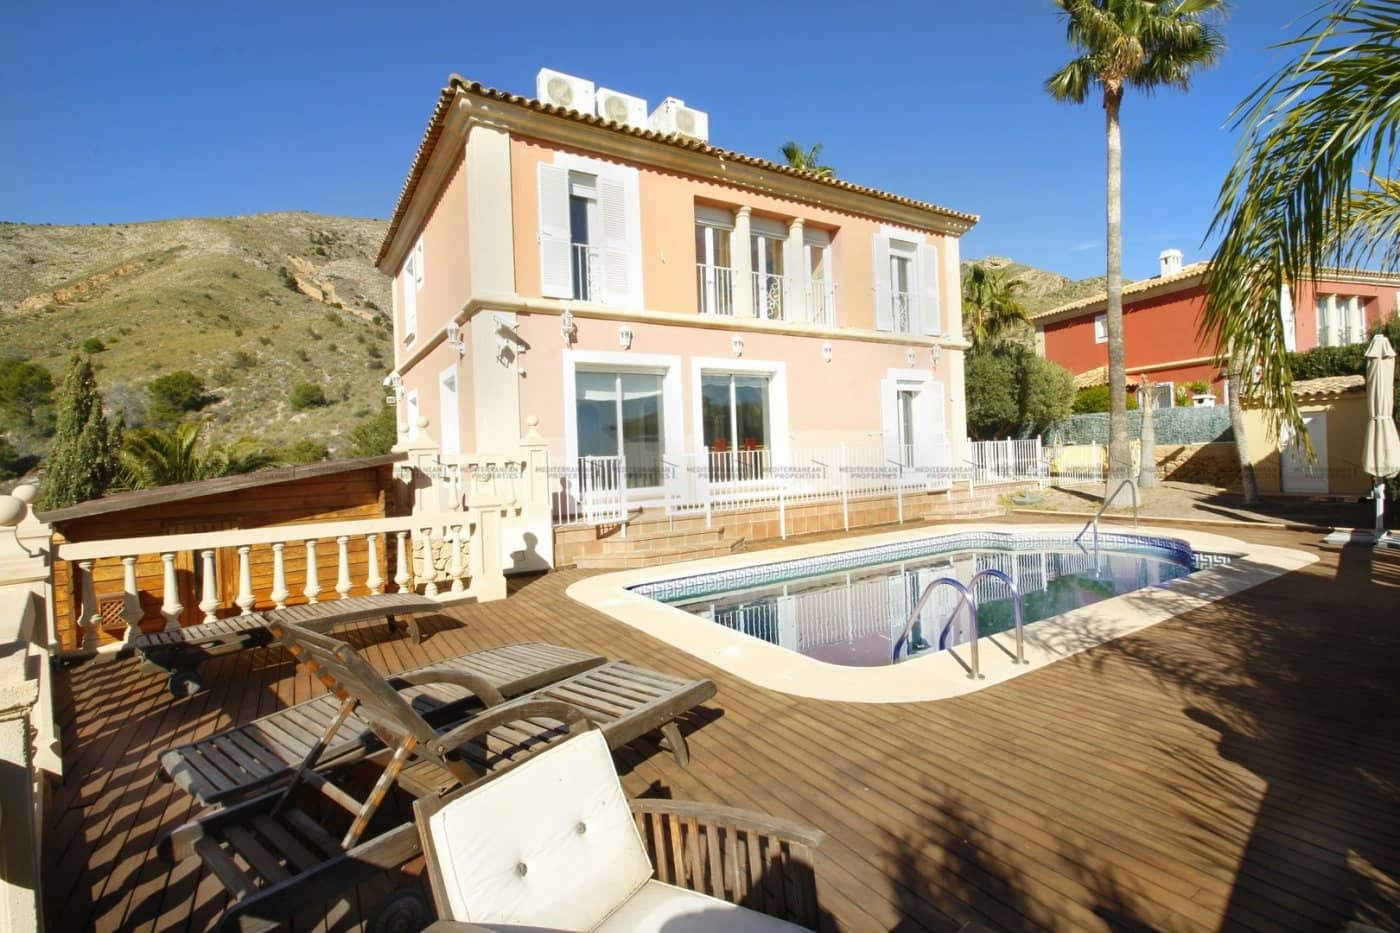 5 bedroom Villa for sale in Finestrat with pool - € 499,000 (Ref: 4441862)